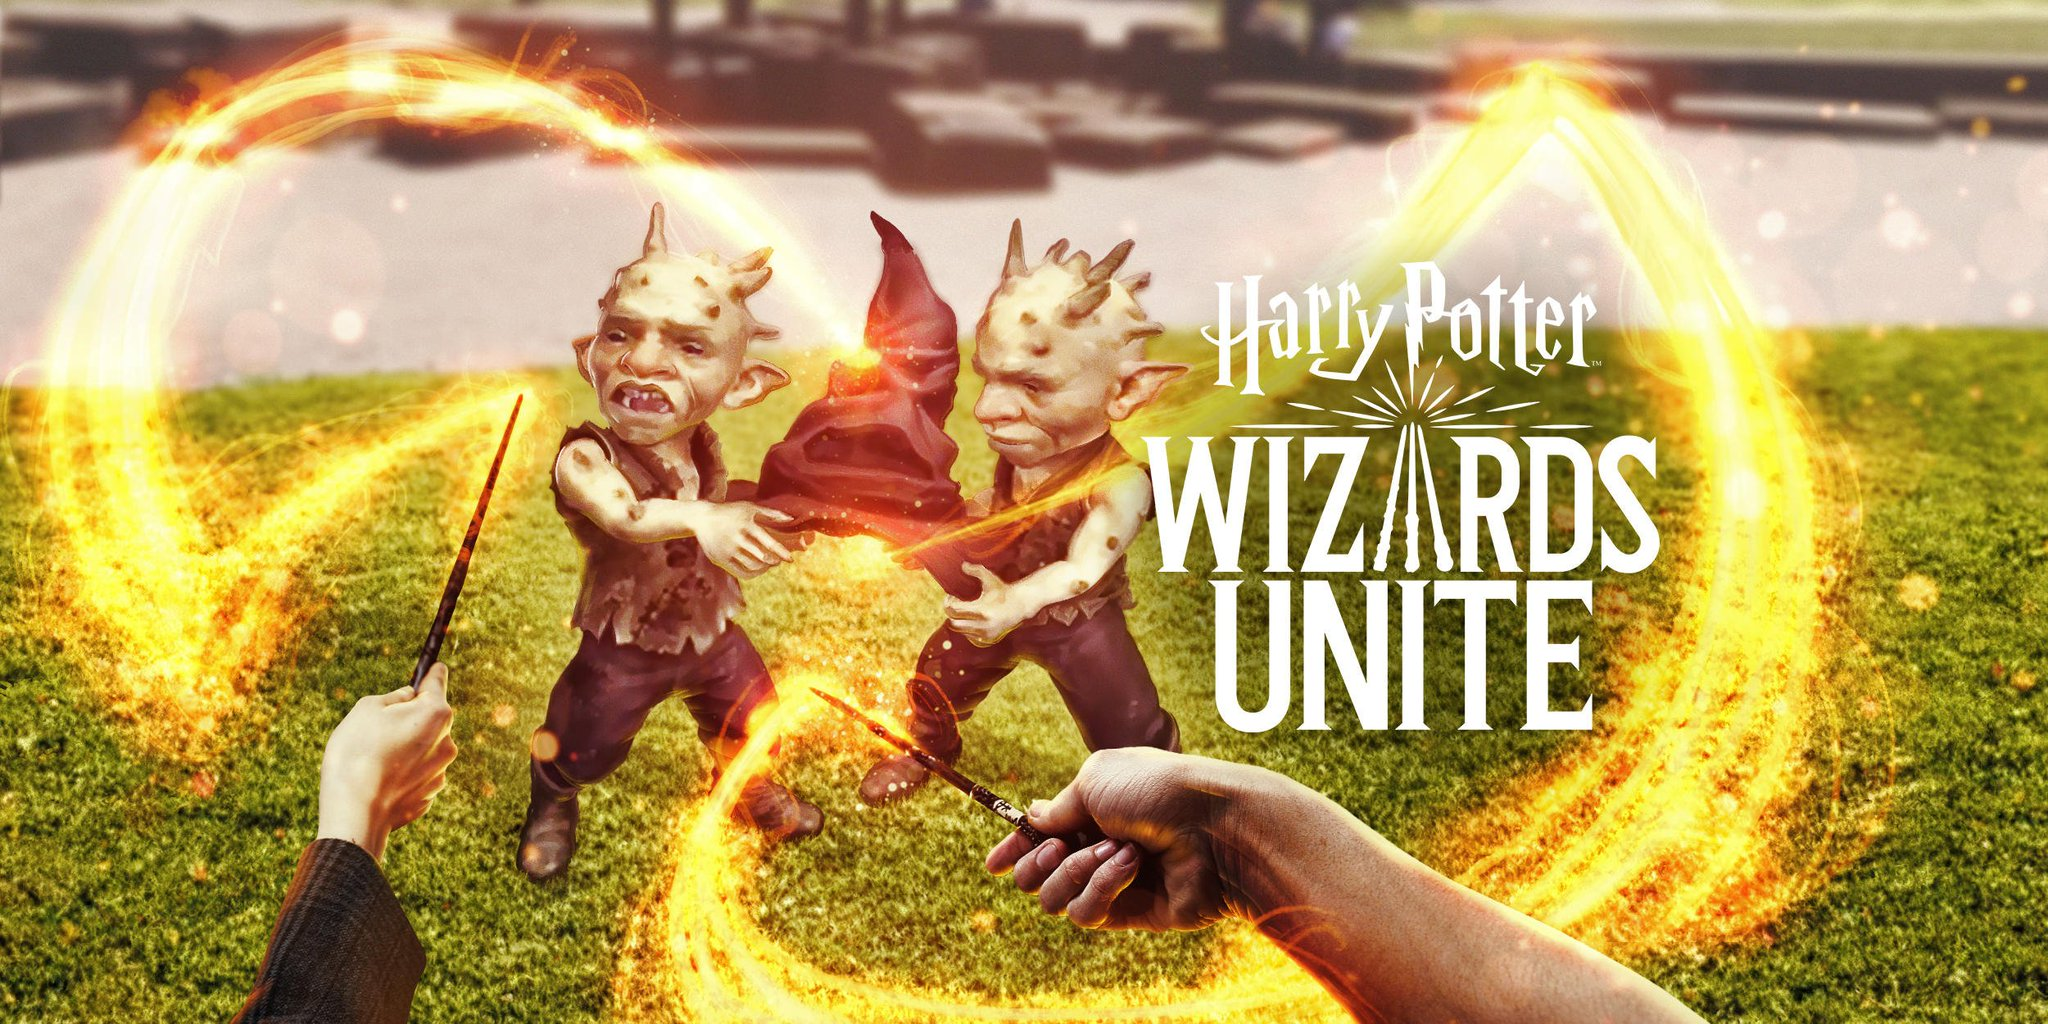 harry potter wizards unite featured image art 2